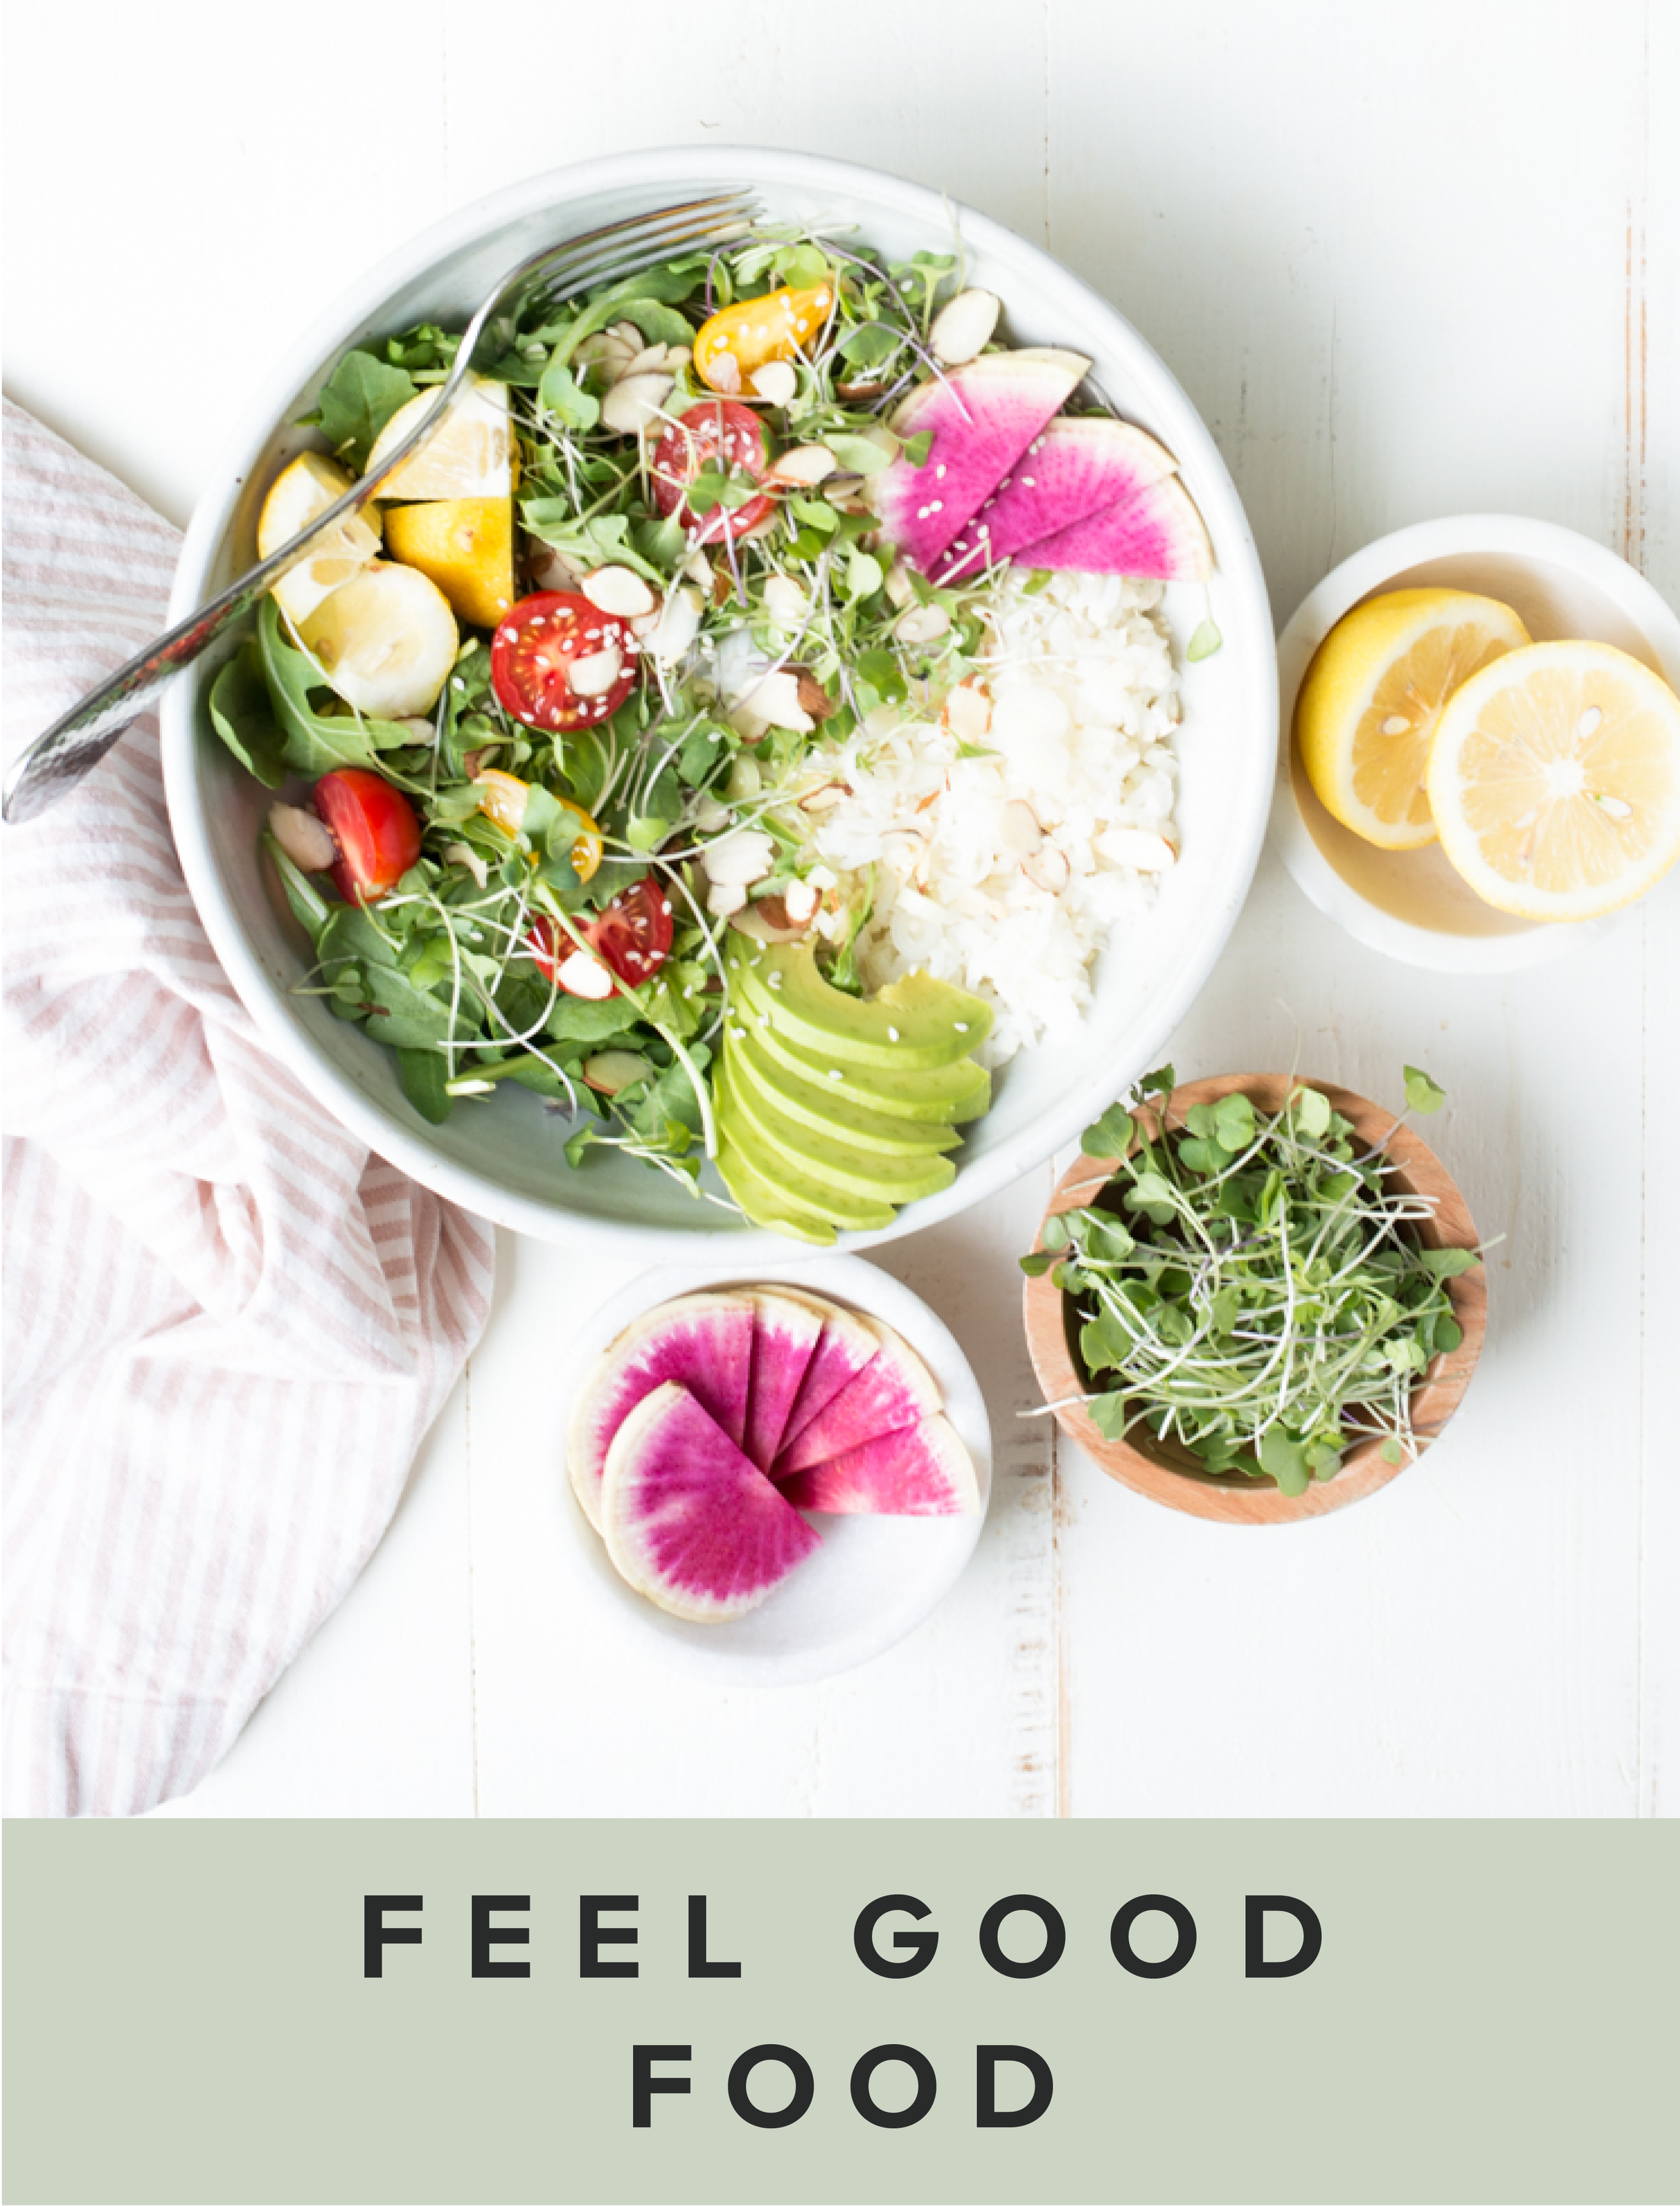 Feel Good Food.